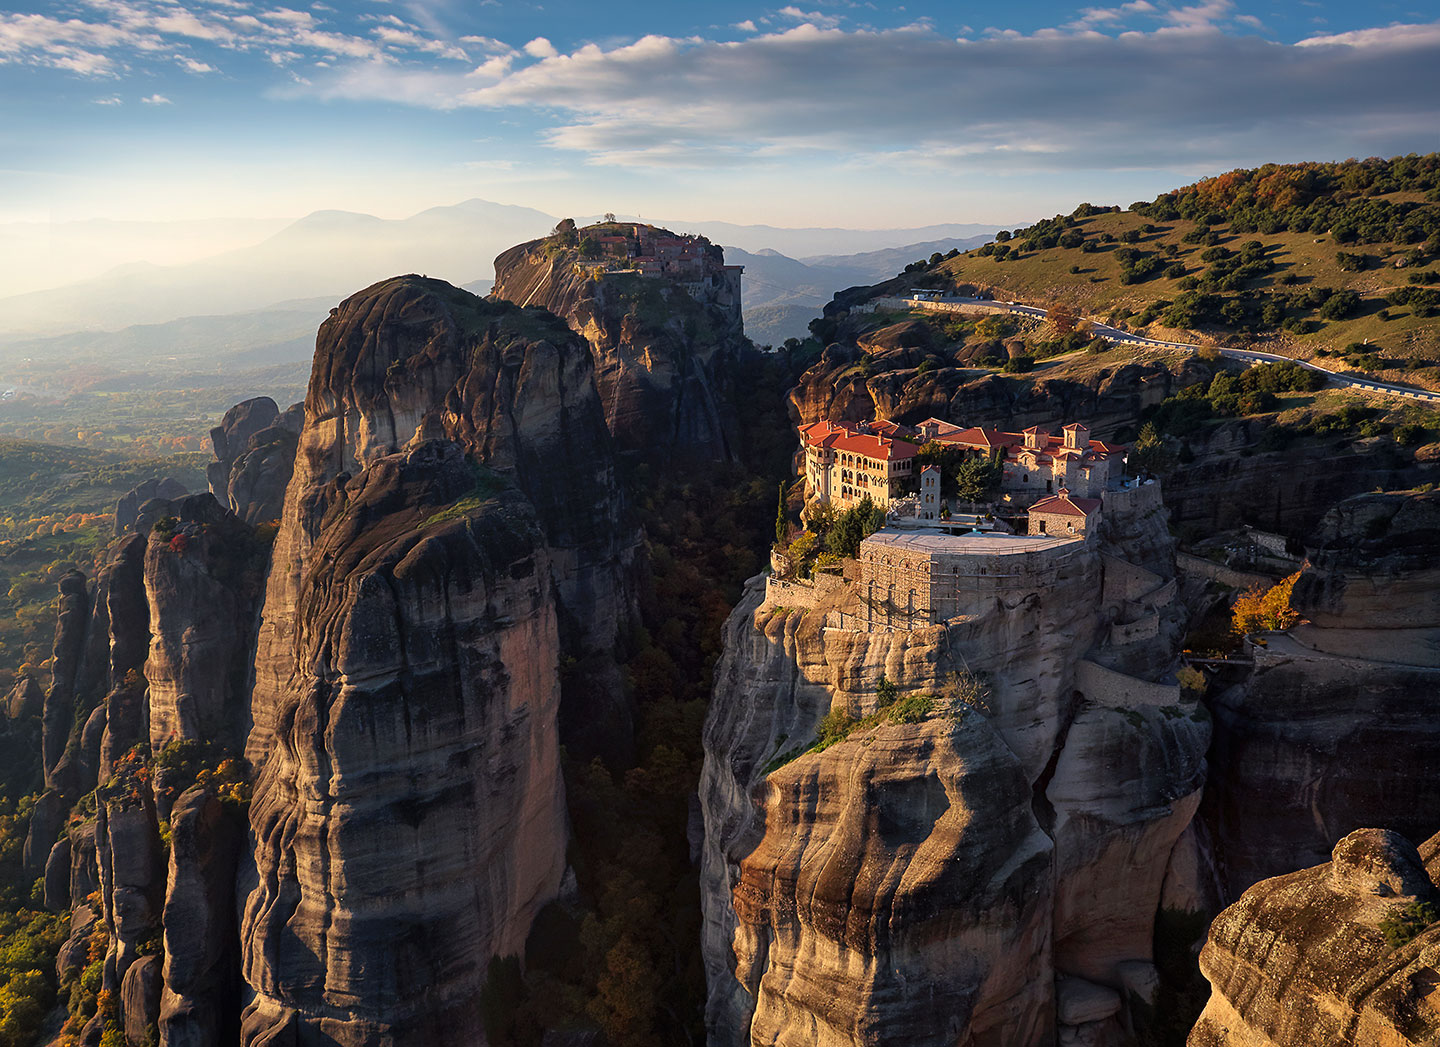 (Watching a beautiful sunset high above the monasteries of Meteora Greece.)